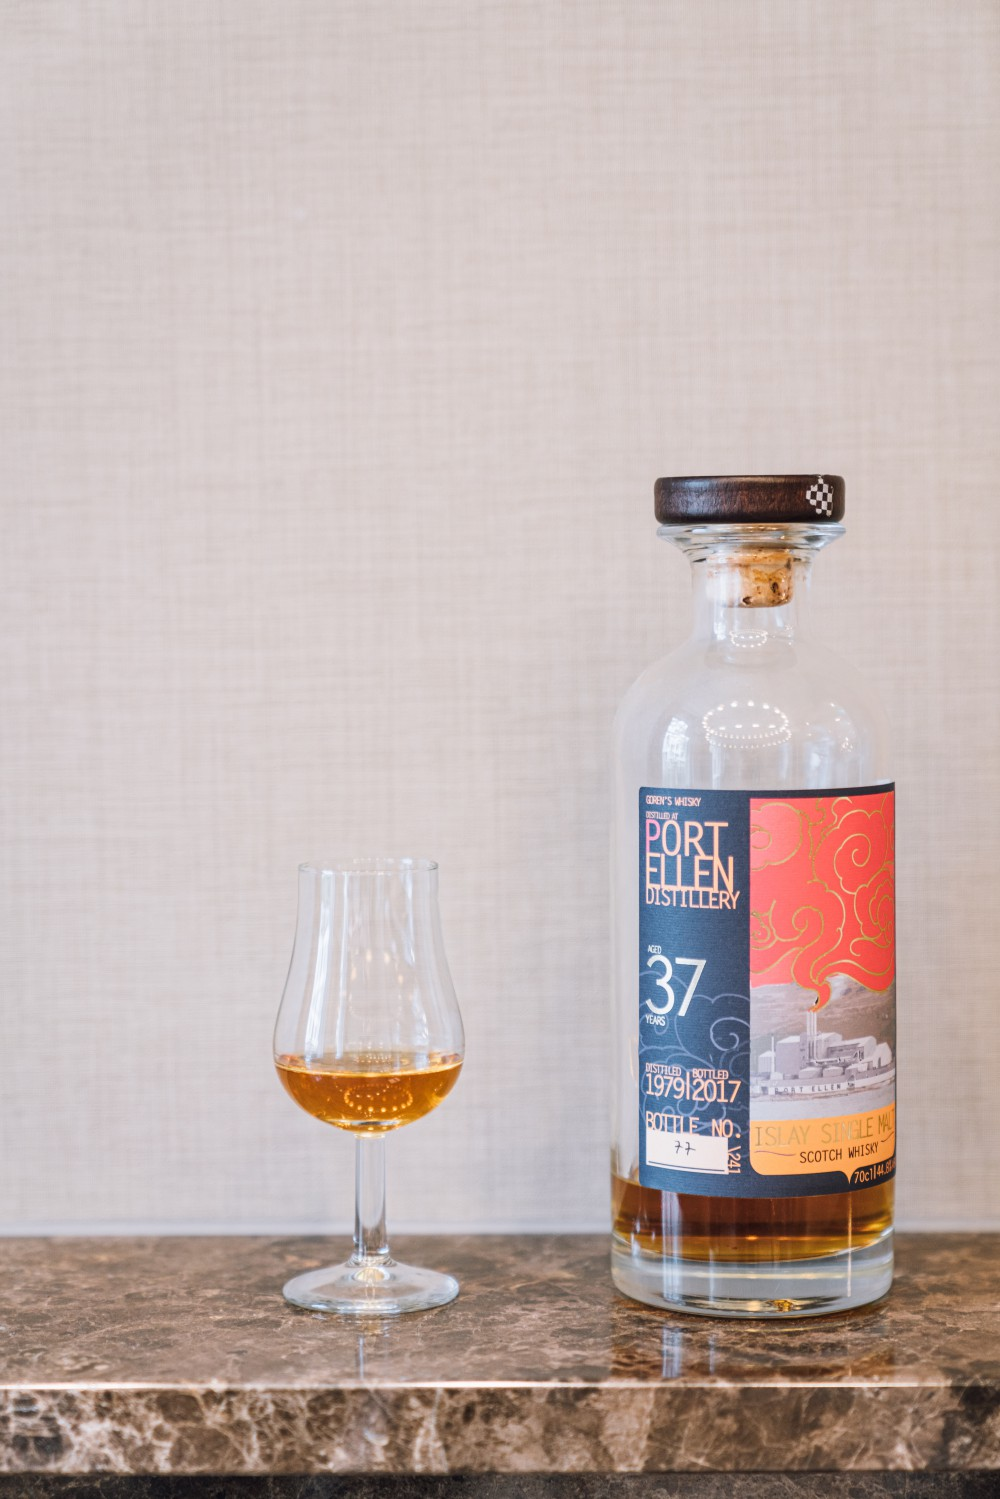 Port Ellen 37 years old